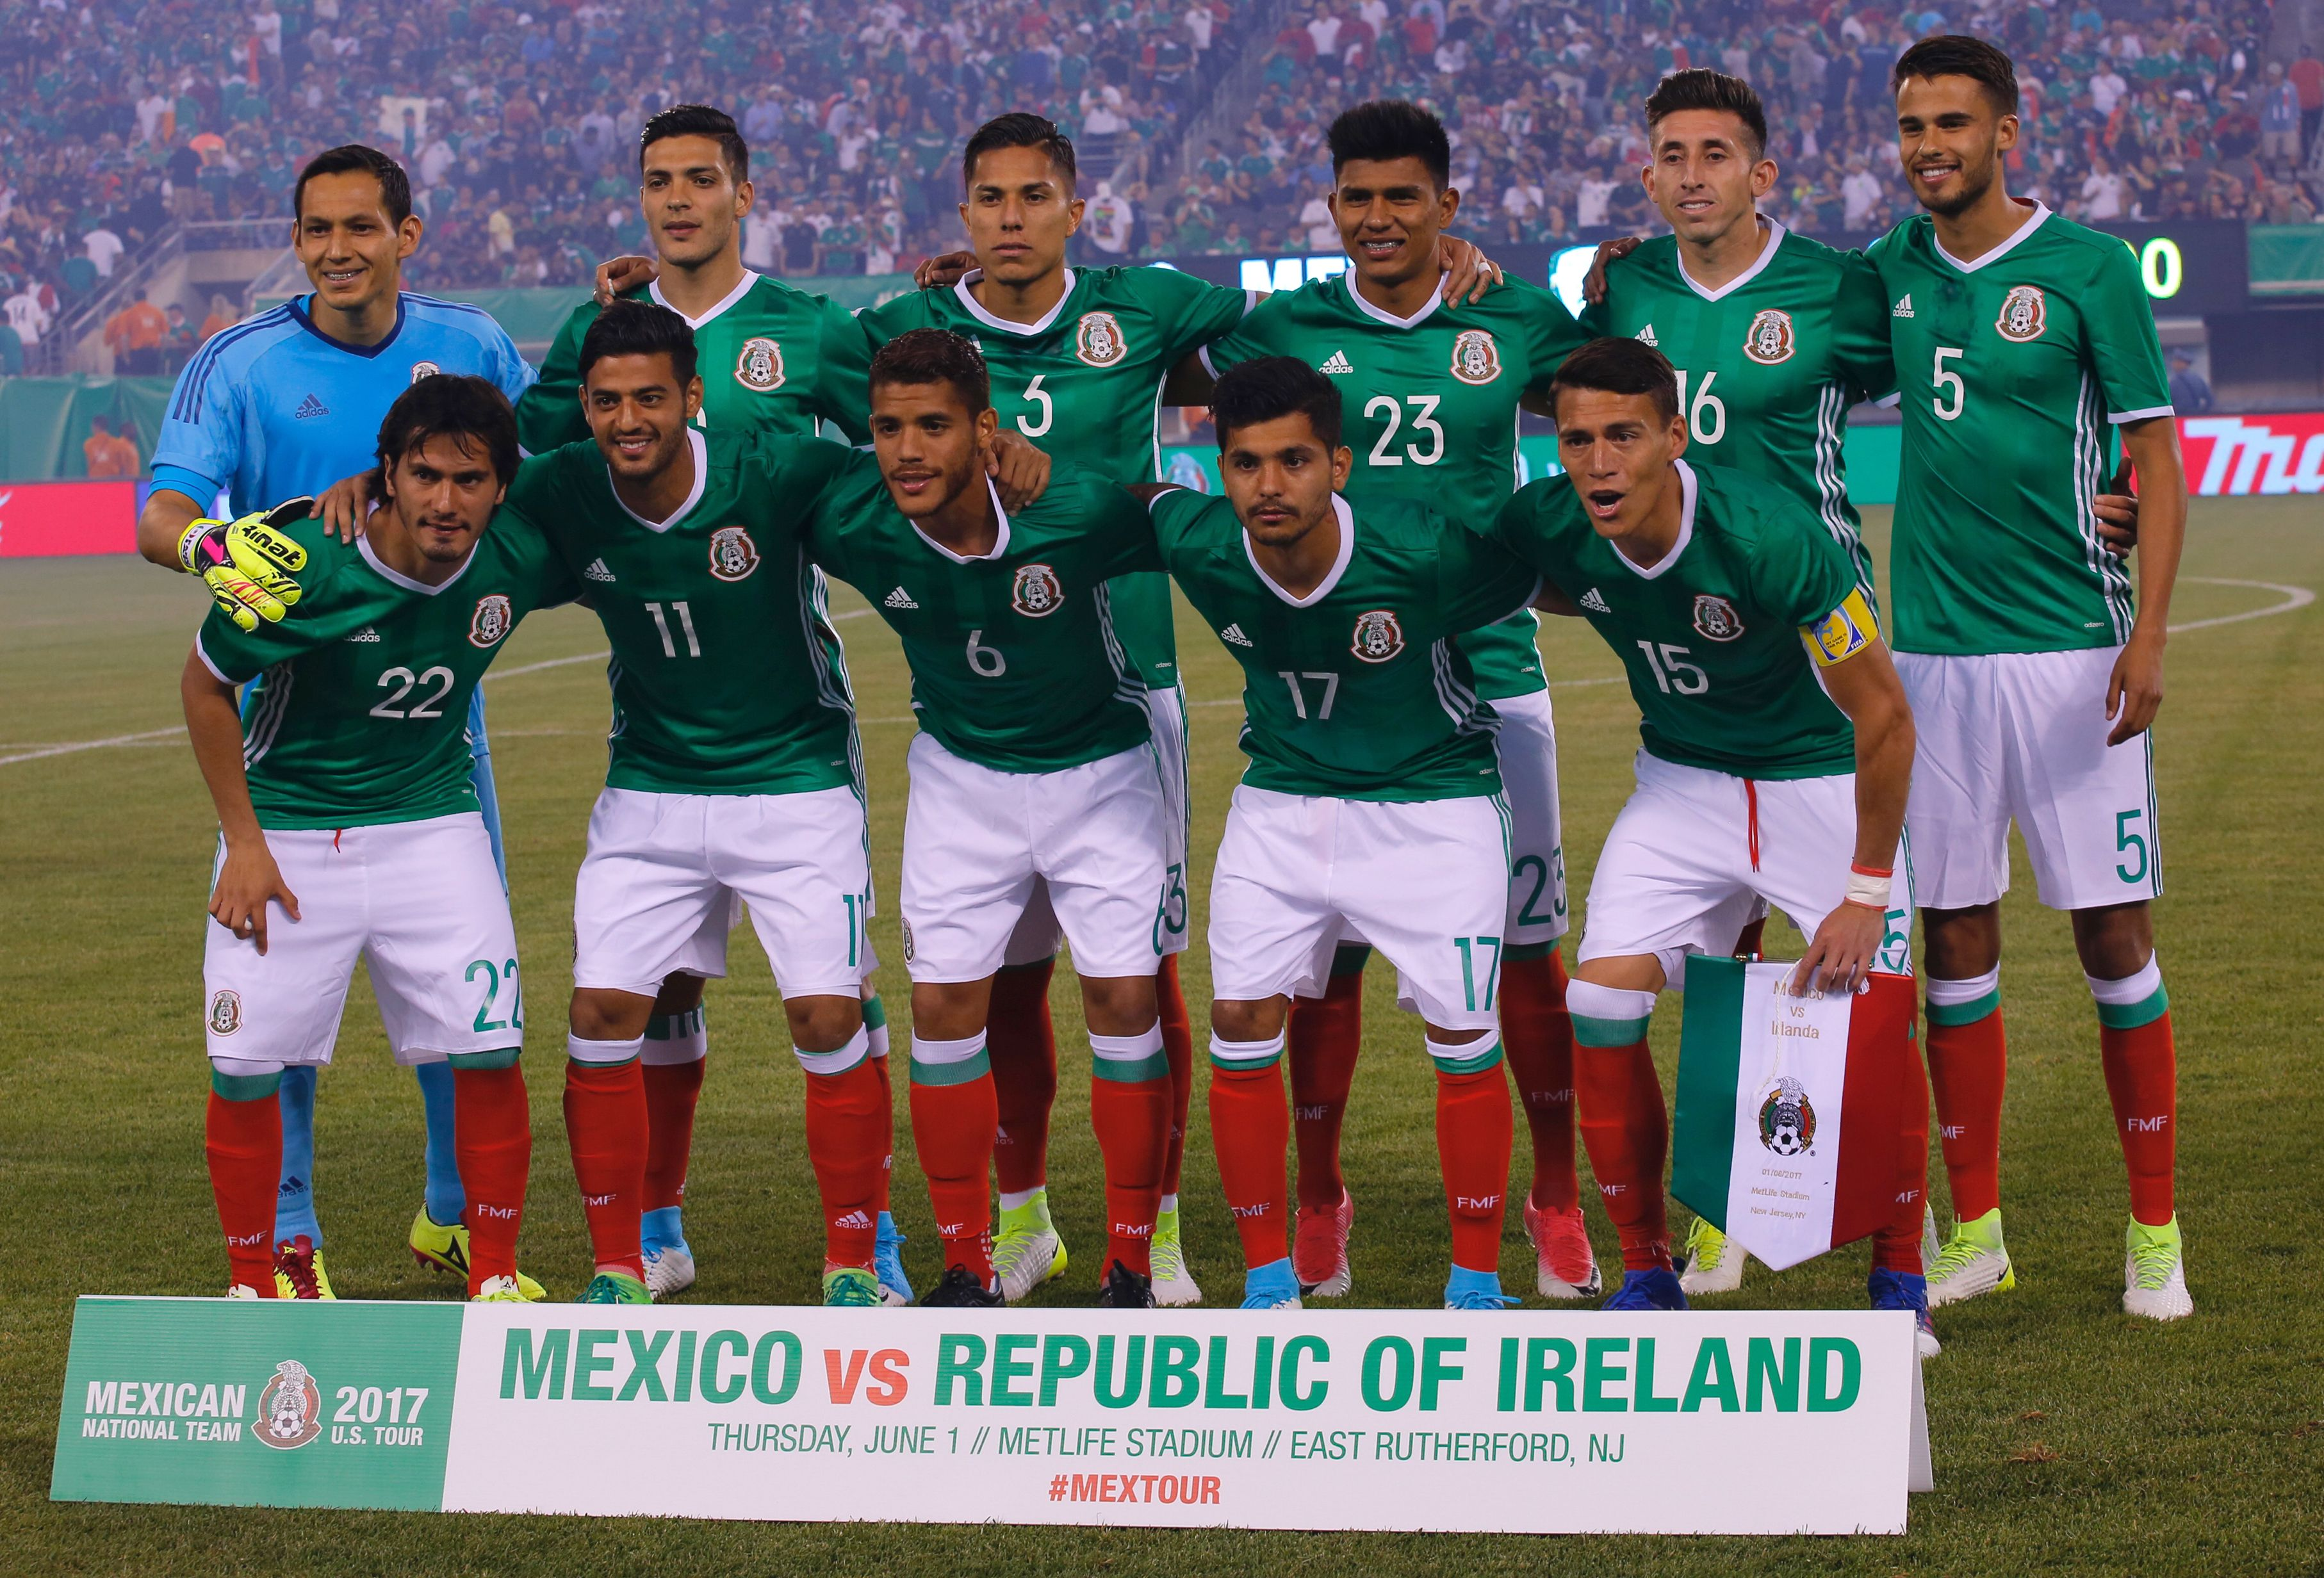 The national soccer team from Mexico poses for a photo before the friendly match between Mexico and the Republic of Ireland on June 1, 2017